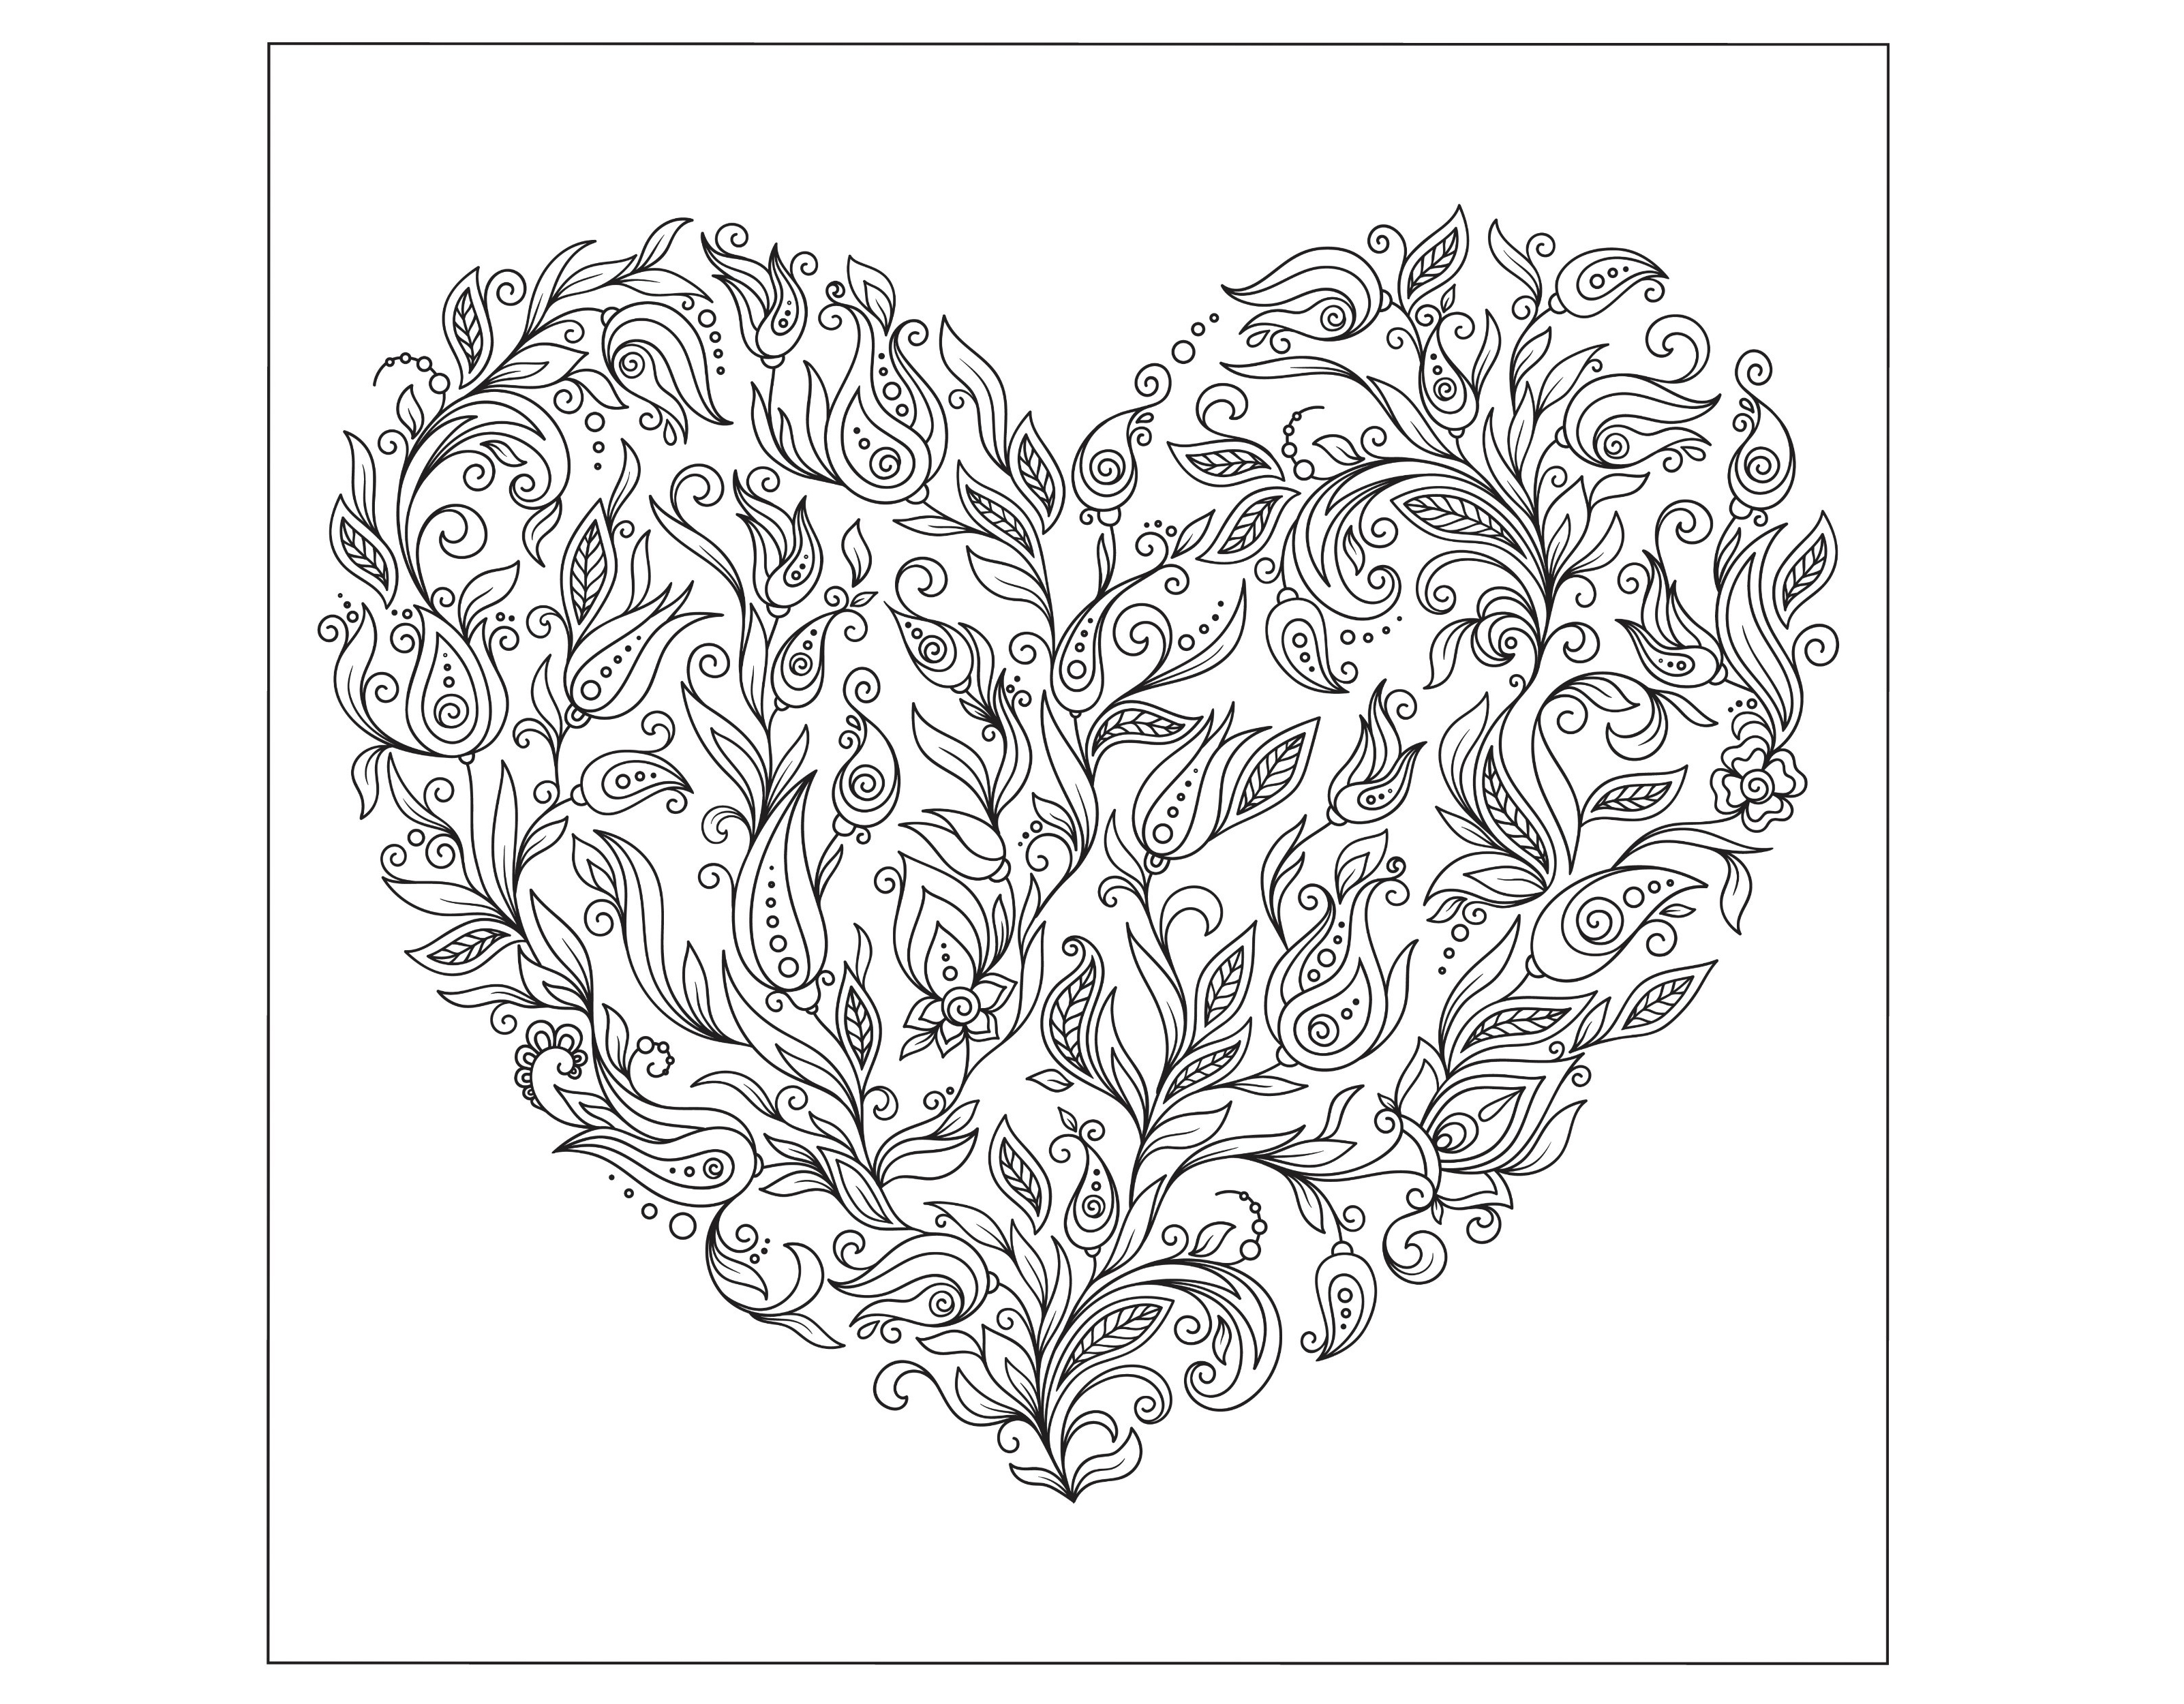 Valentines Day Coloring Pages for